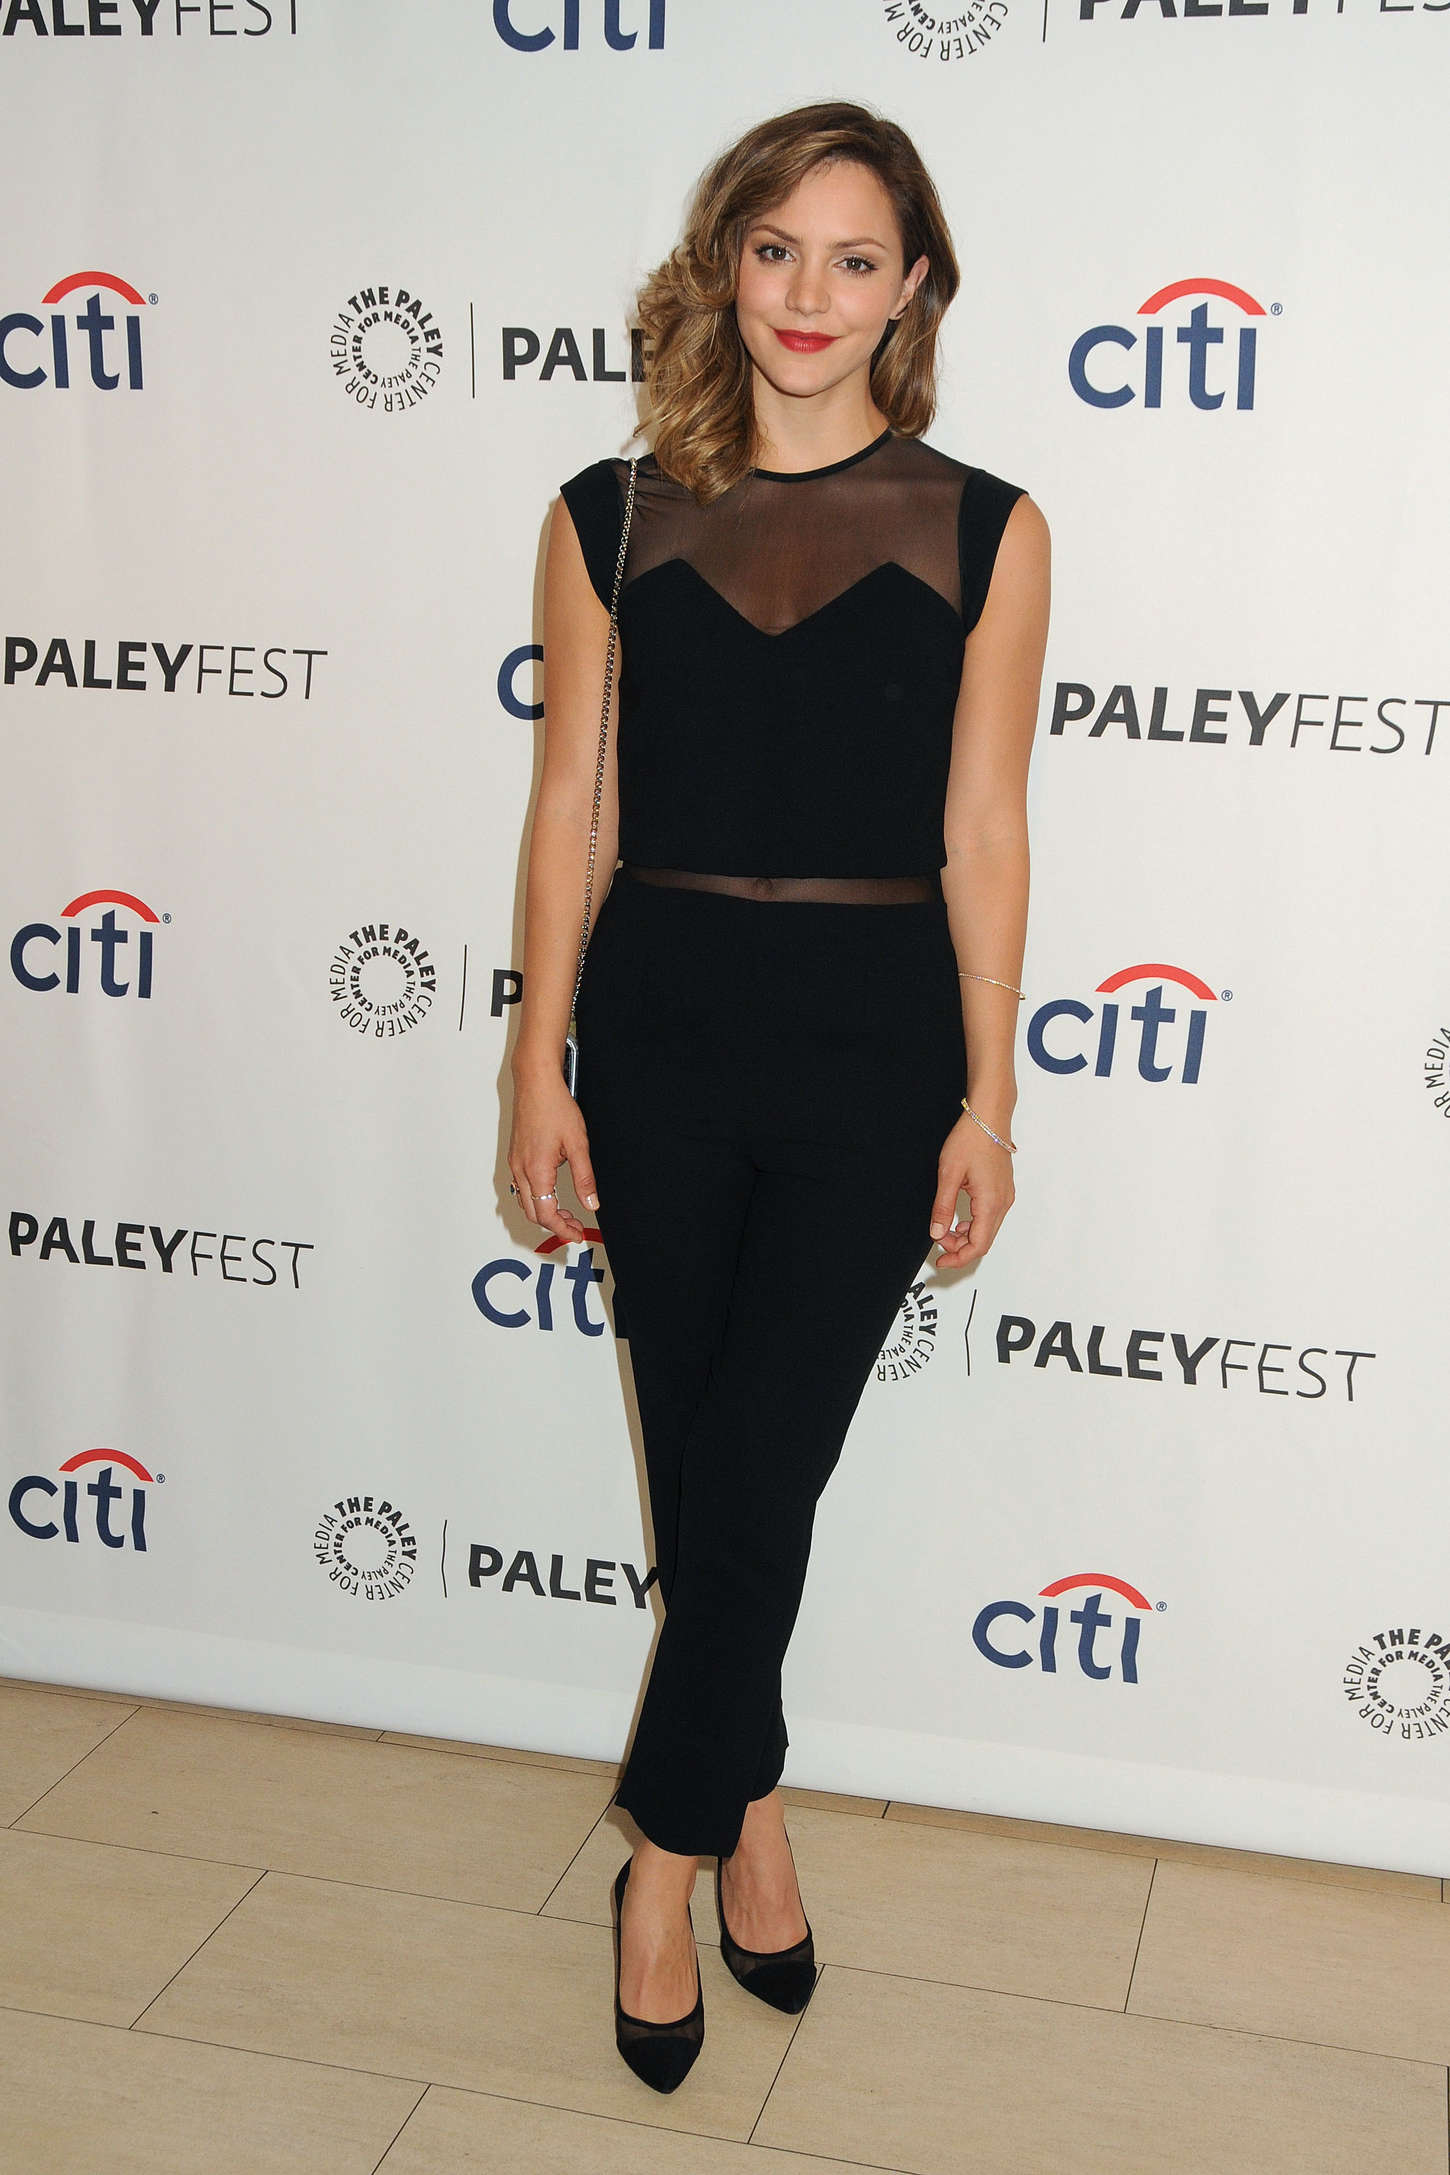 Katherine McPhee Fall TV Preview Party for CBS Scorpion at Paleyfest in Beverly Hills